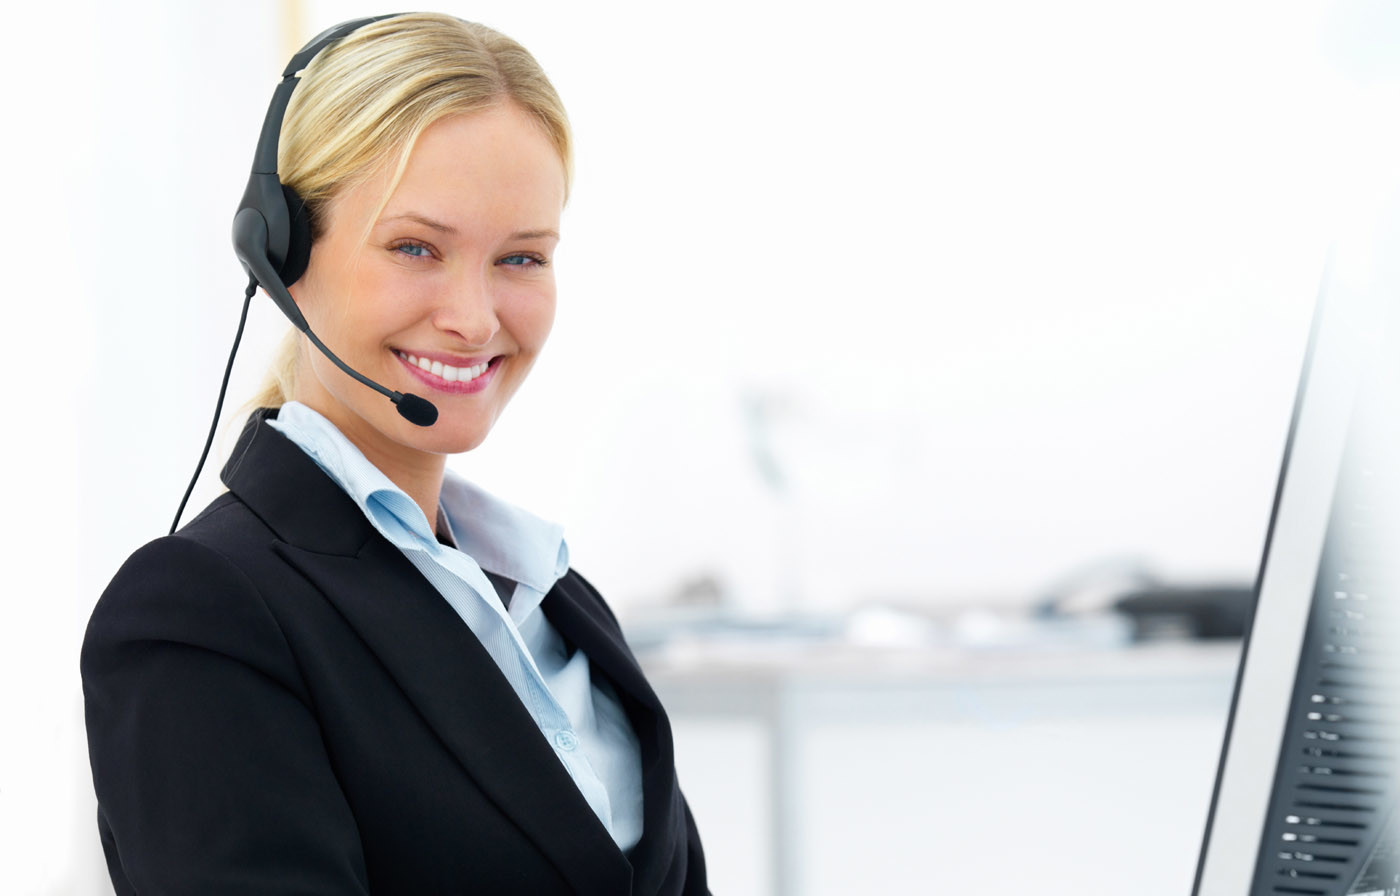 I will be your Awesome virtual assistant